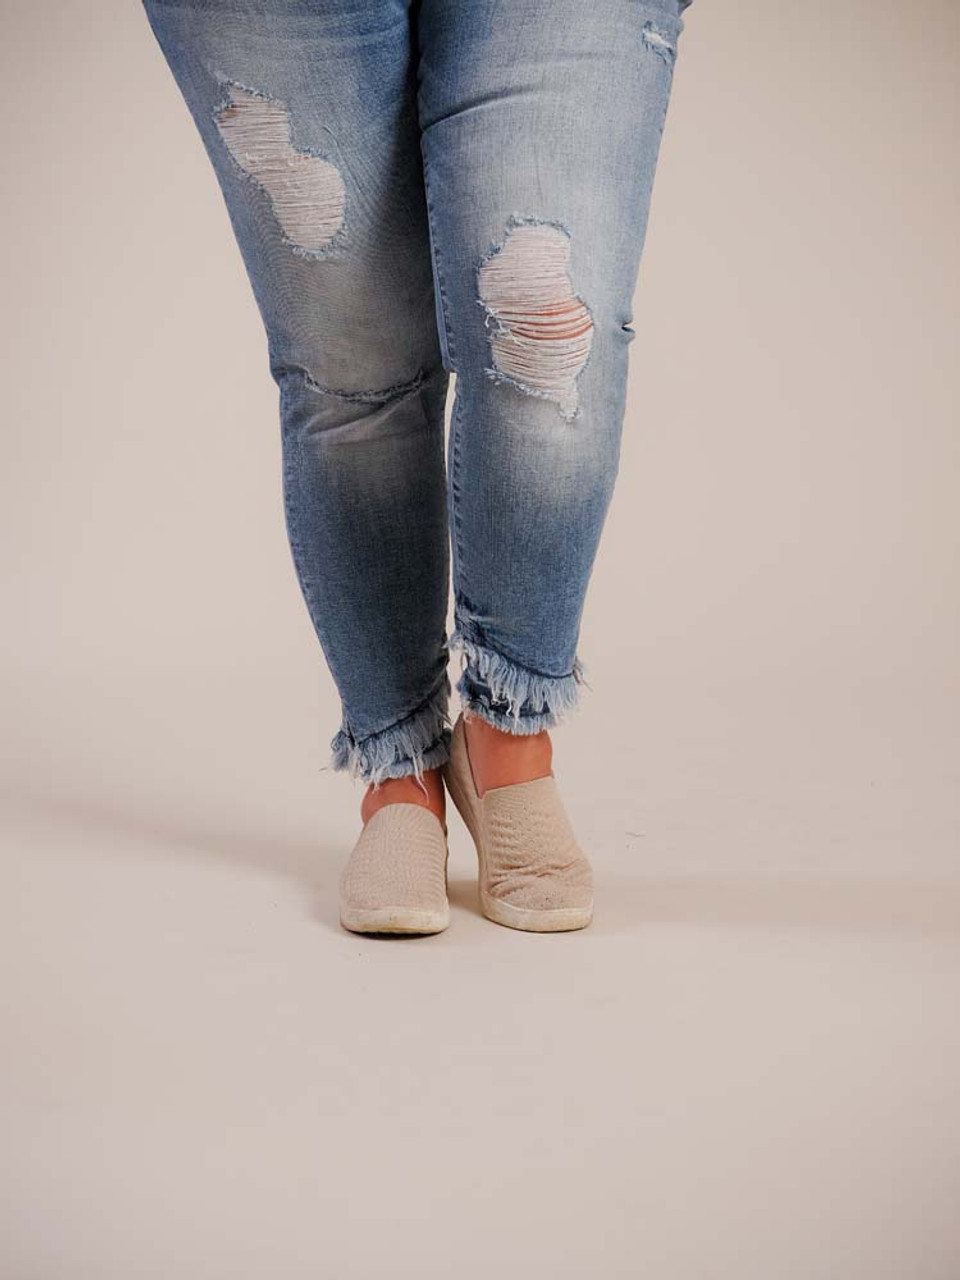 Medium/light blue denim skinny jeans with frayed details. Front and back pockets, zipper fly, and layered frayed detail at ancles